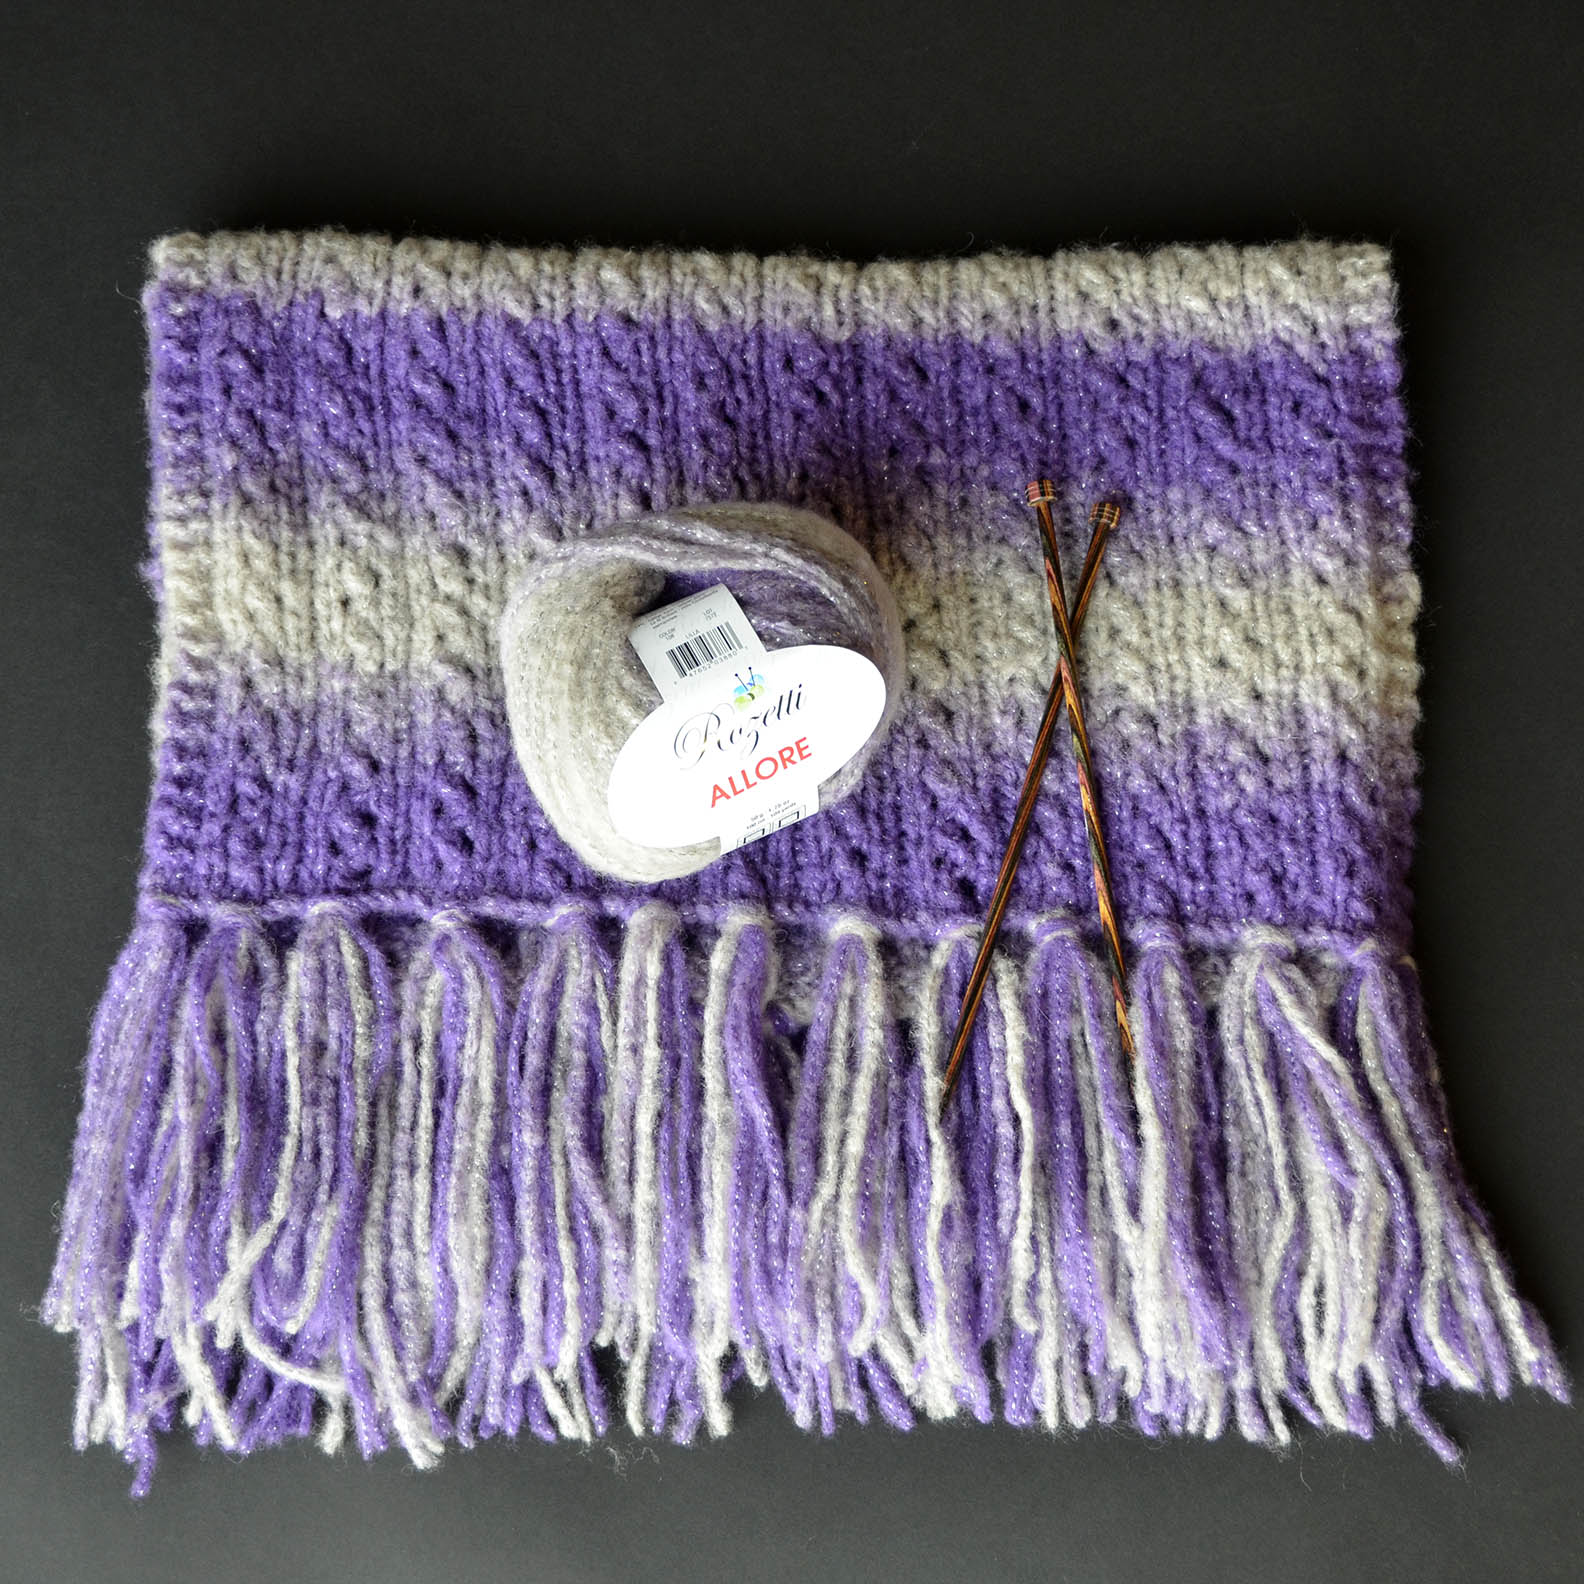 Warmth Wrap with yarn blog